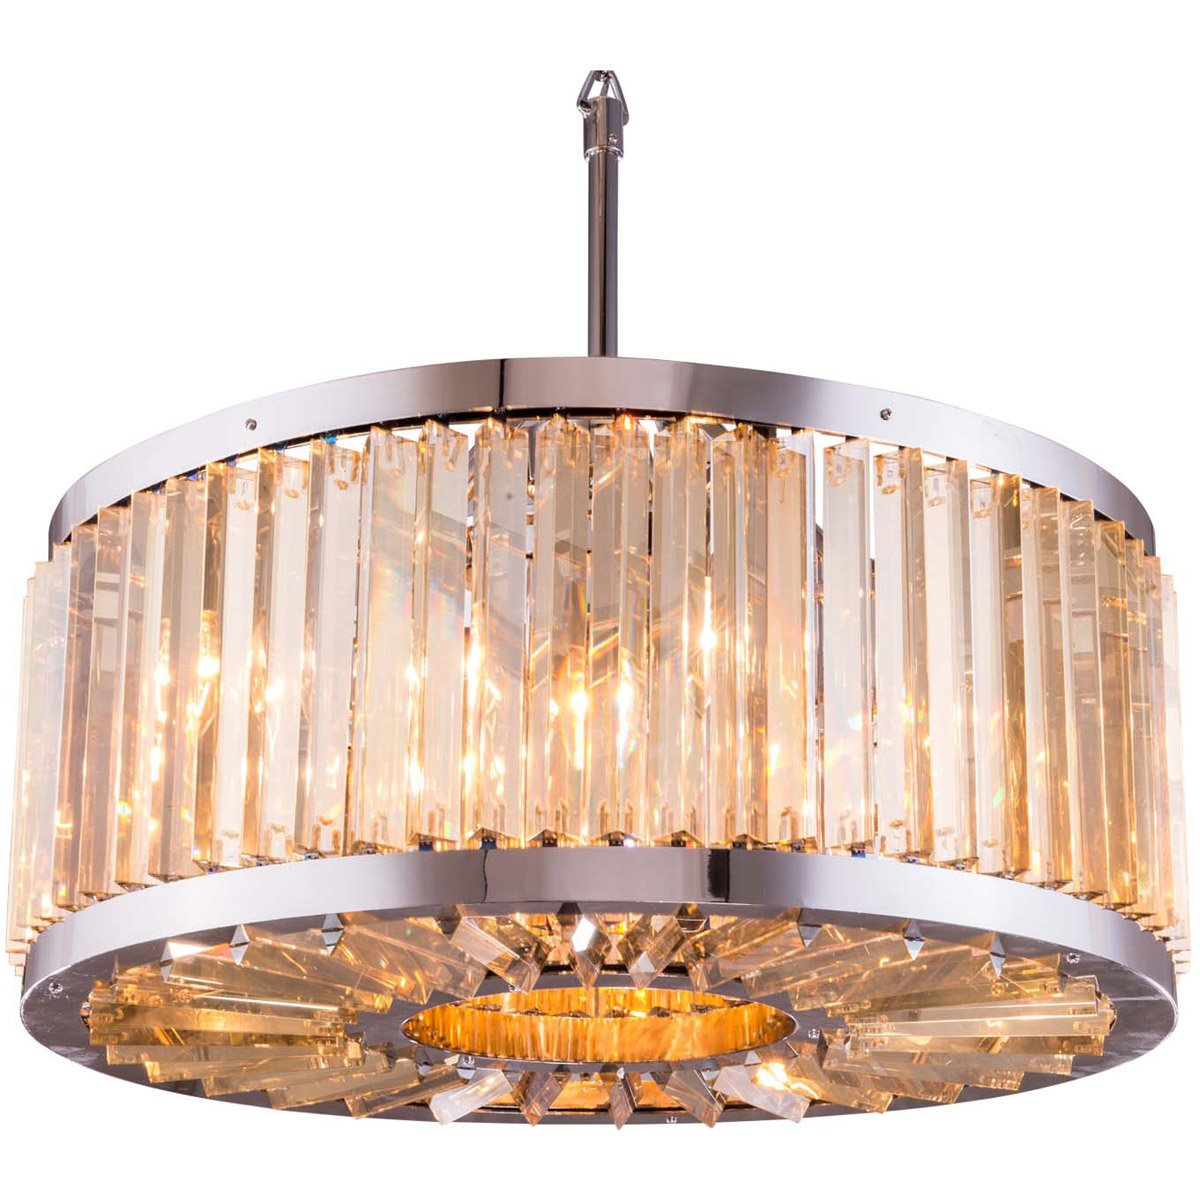 Chelsea 28 Crystal Pendant Chandelier With 8 Lights - Polished Nickel Finish And Smokey Crystal Chandelier